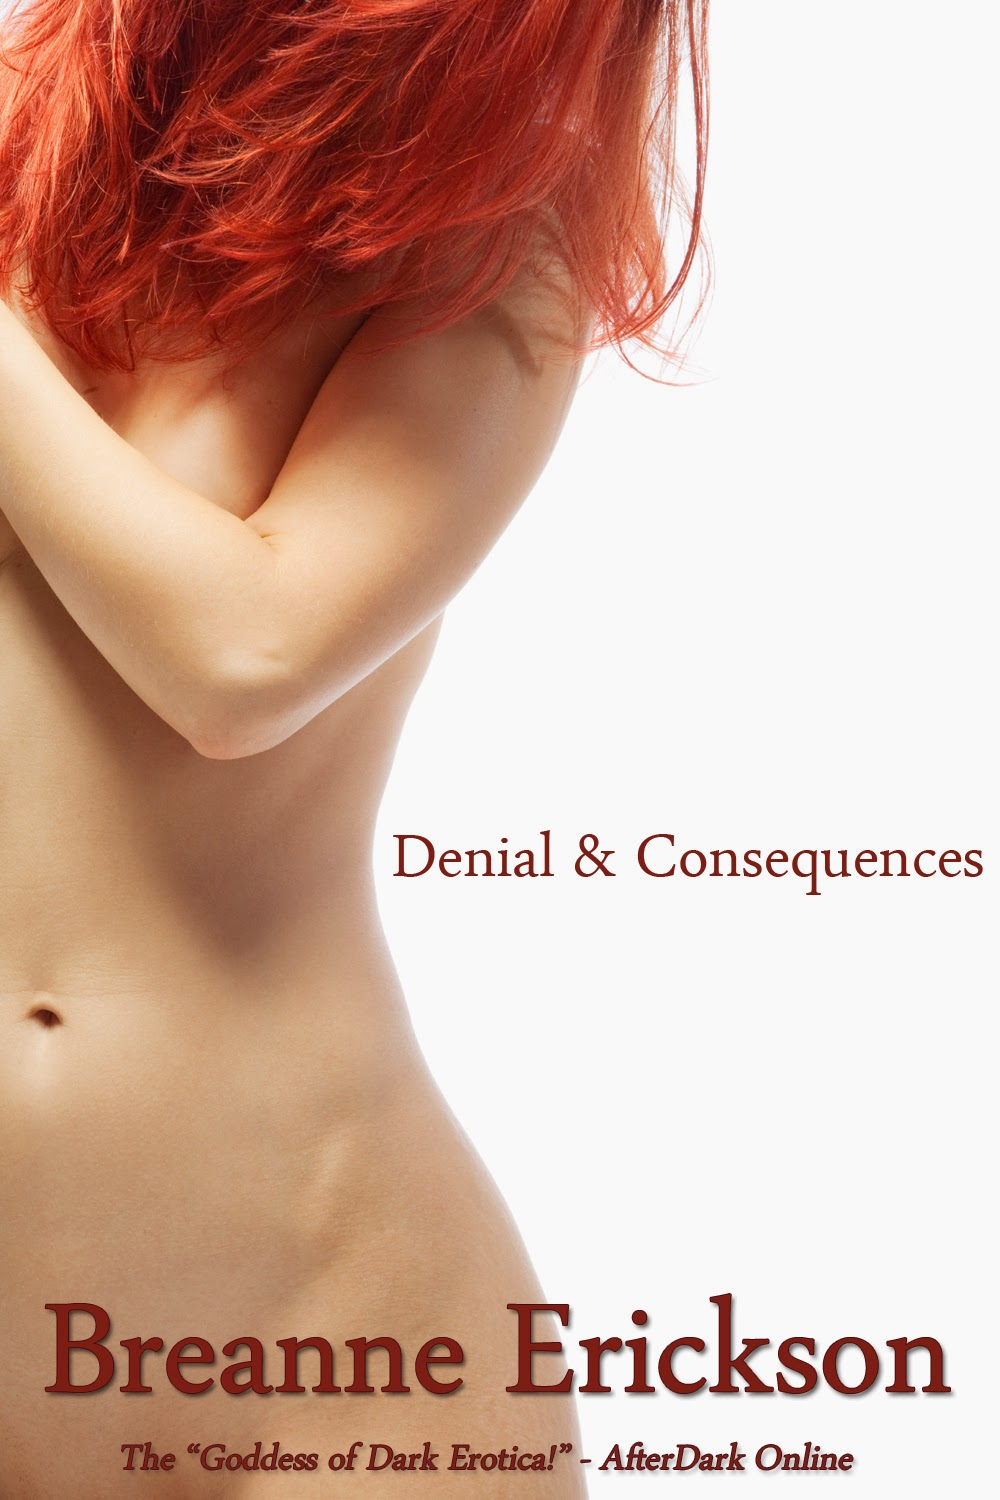 Denial & Consequences